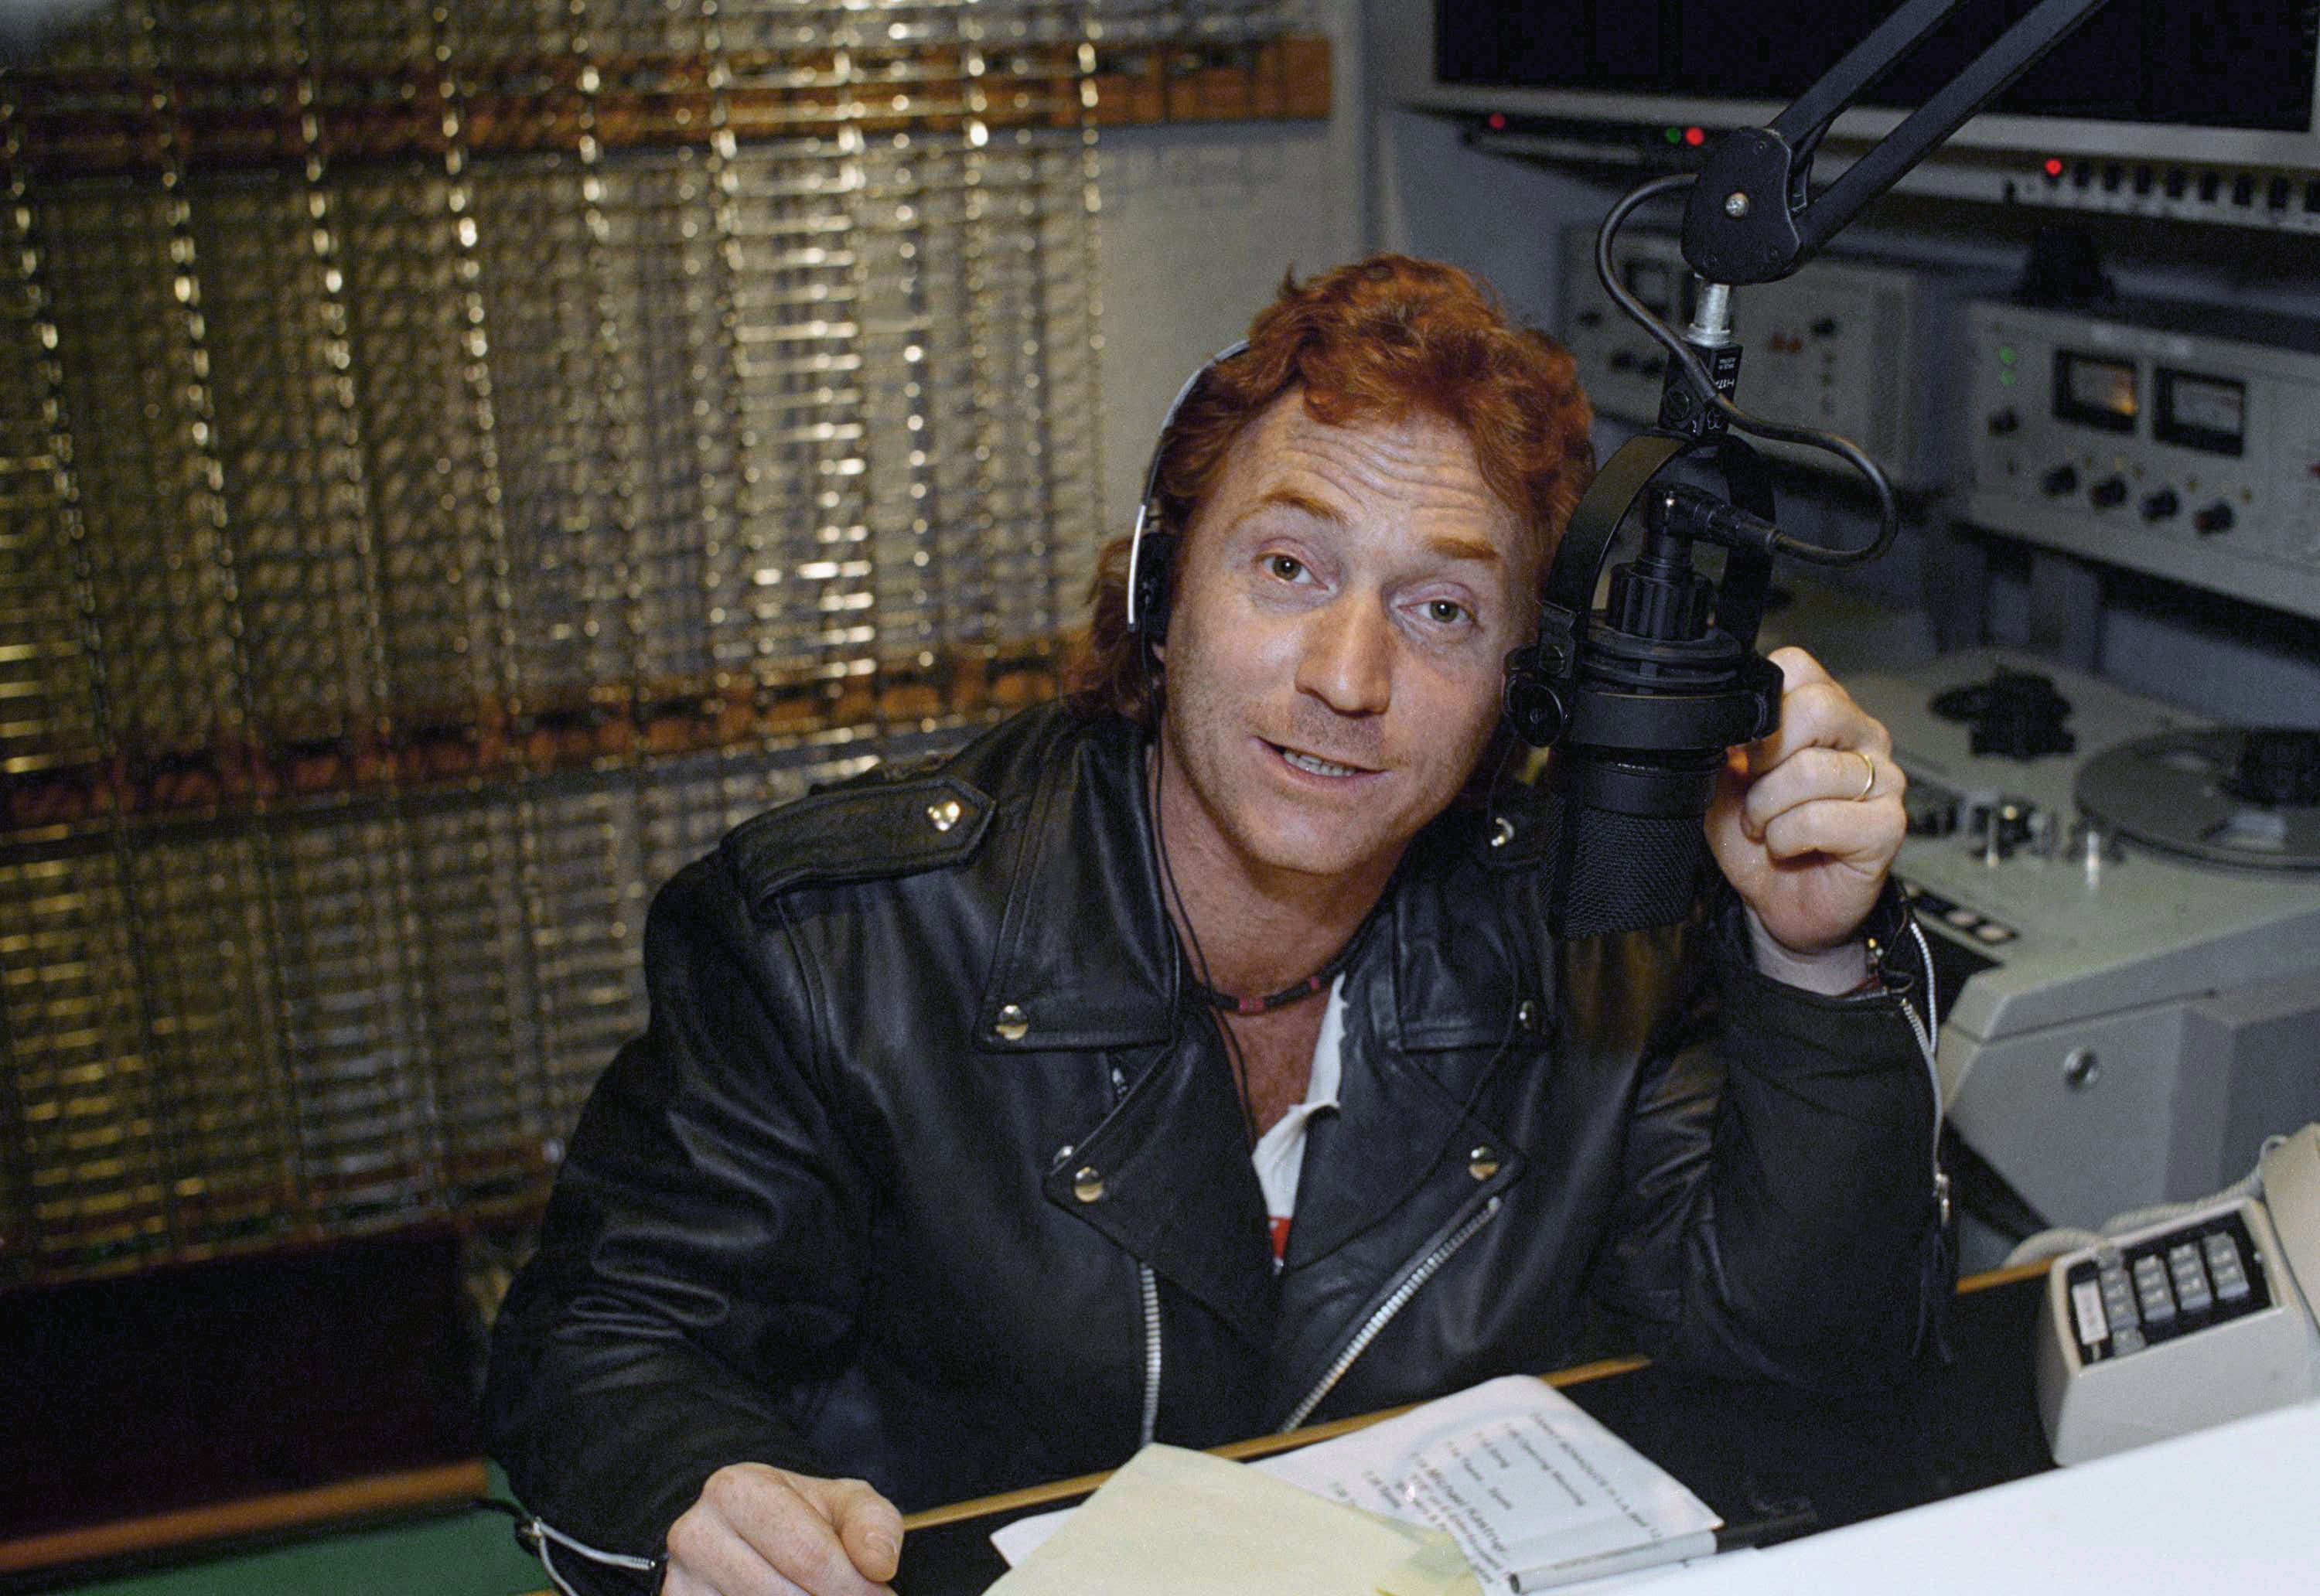 Danny Bonaduce HQ wallpapers